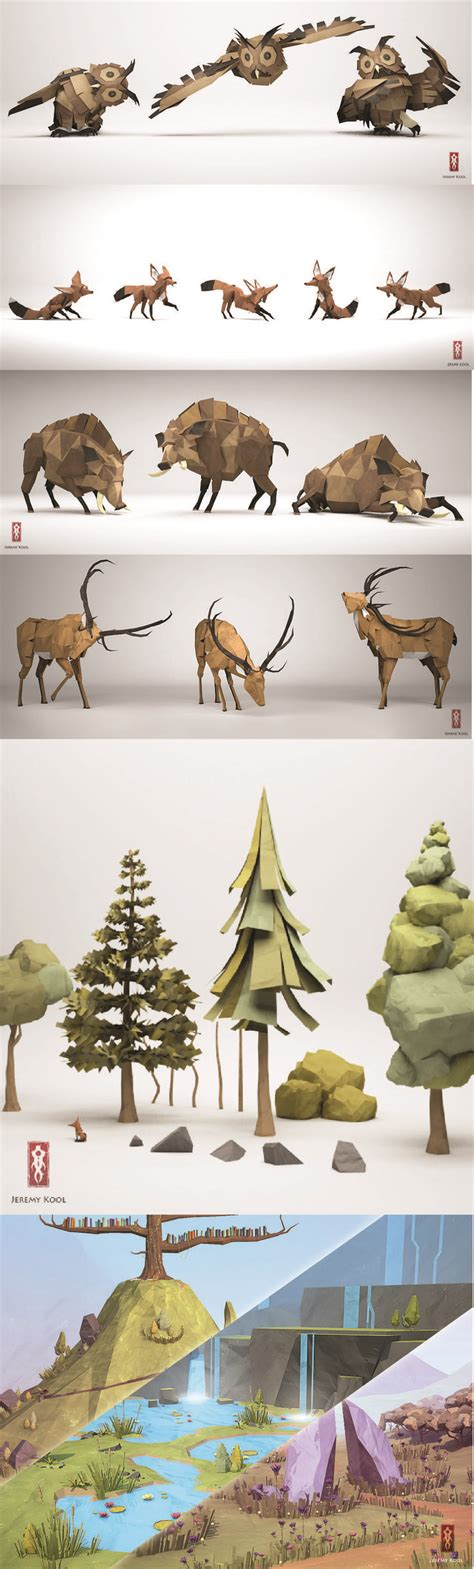 Kool Origami - 635 best images about creatures on